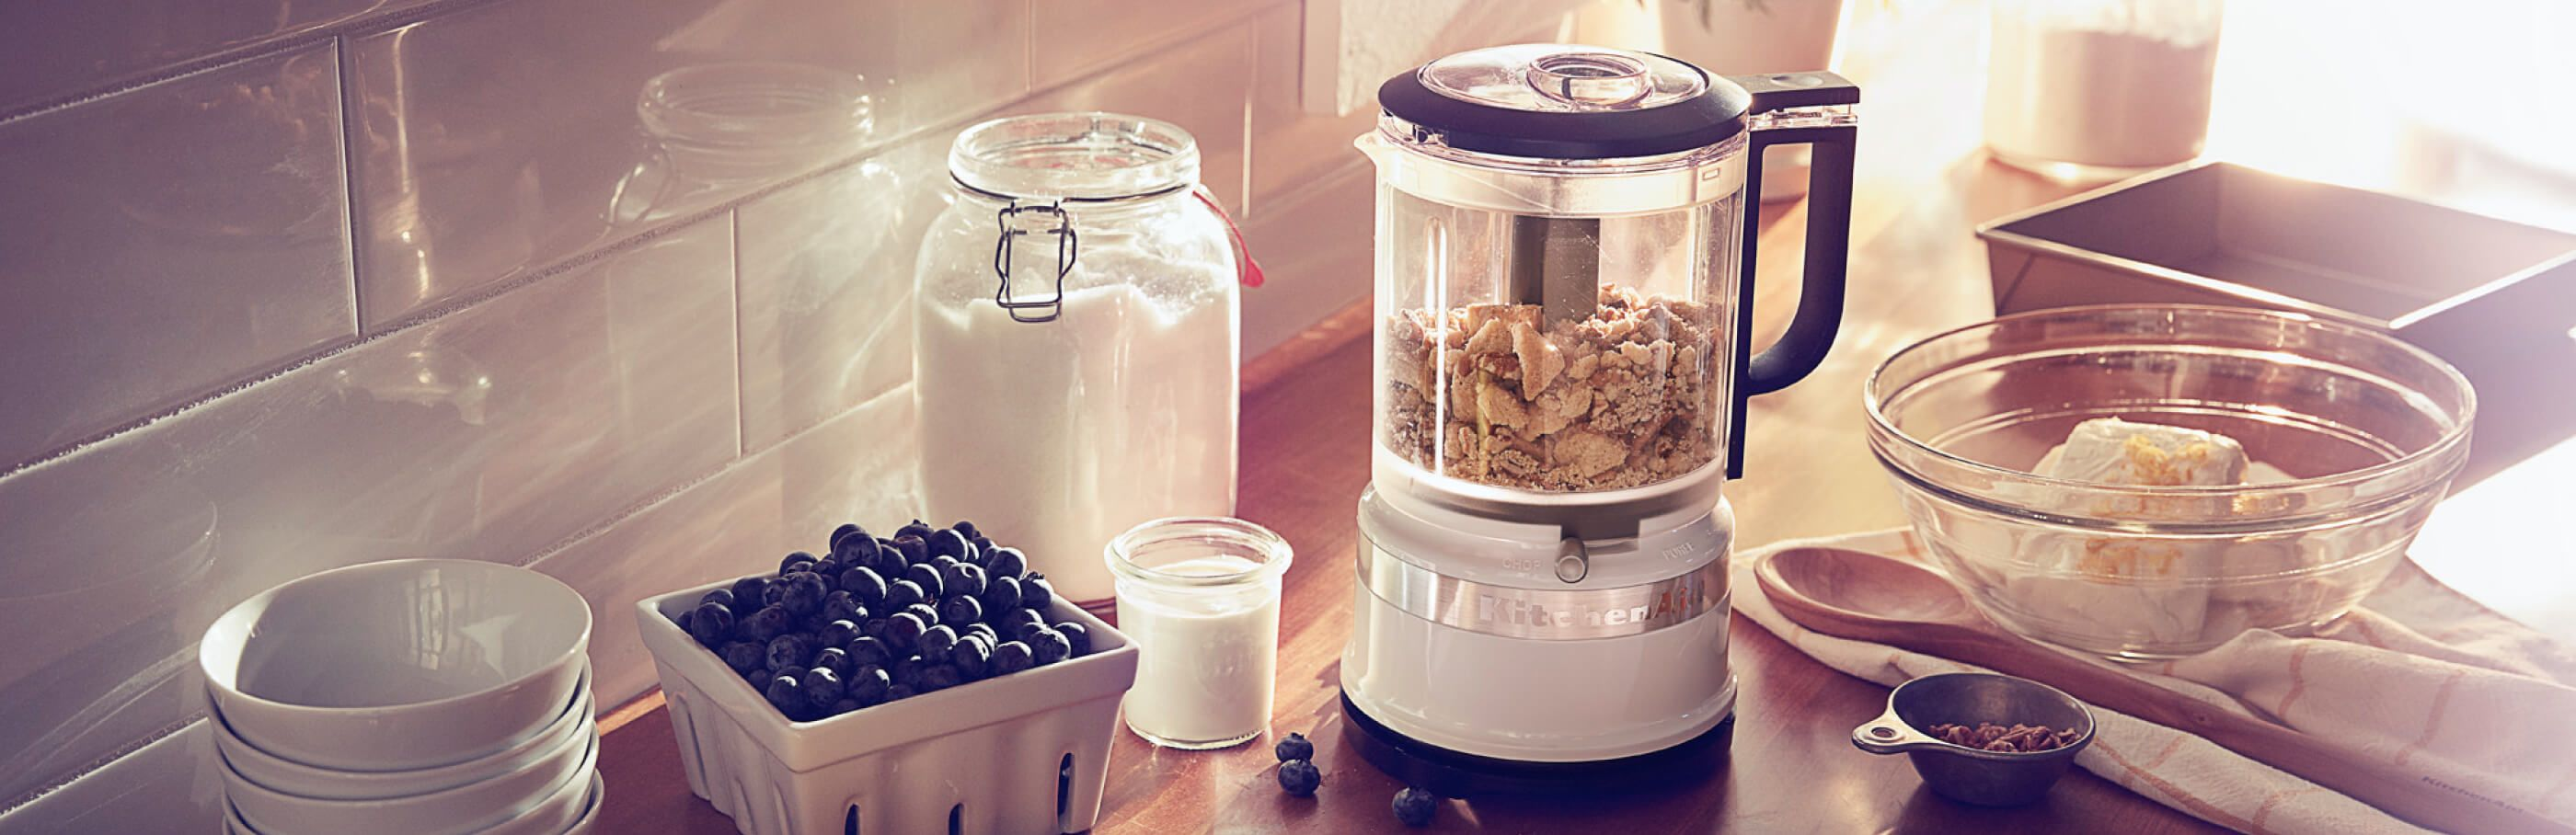 A White KitchenAid® food processor on a wooden countertop with blueberries and other ingredients.